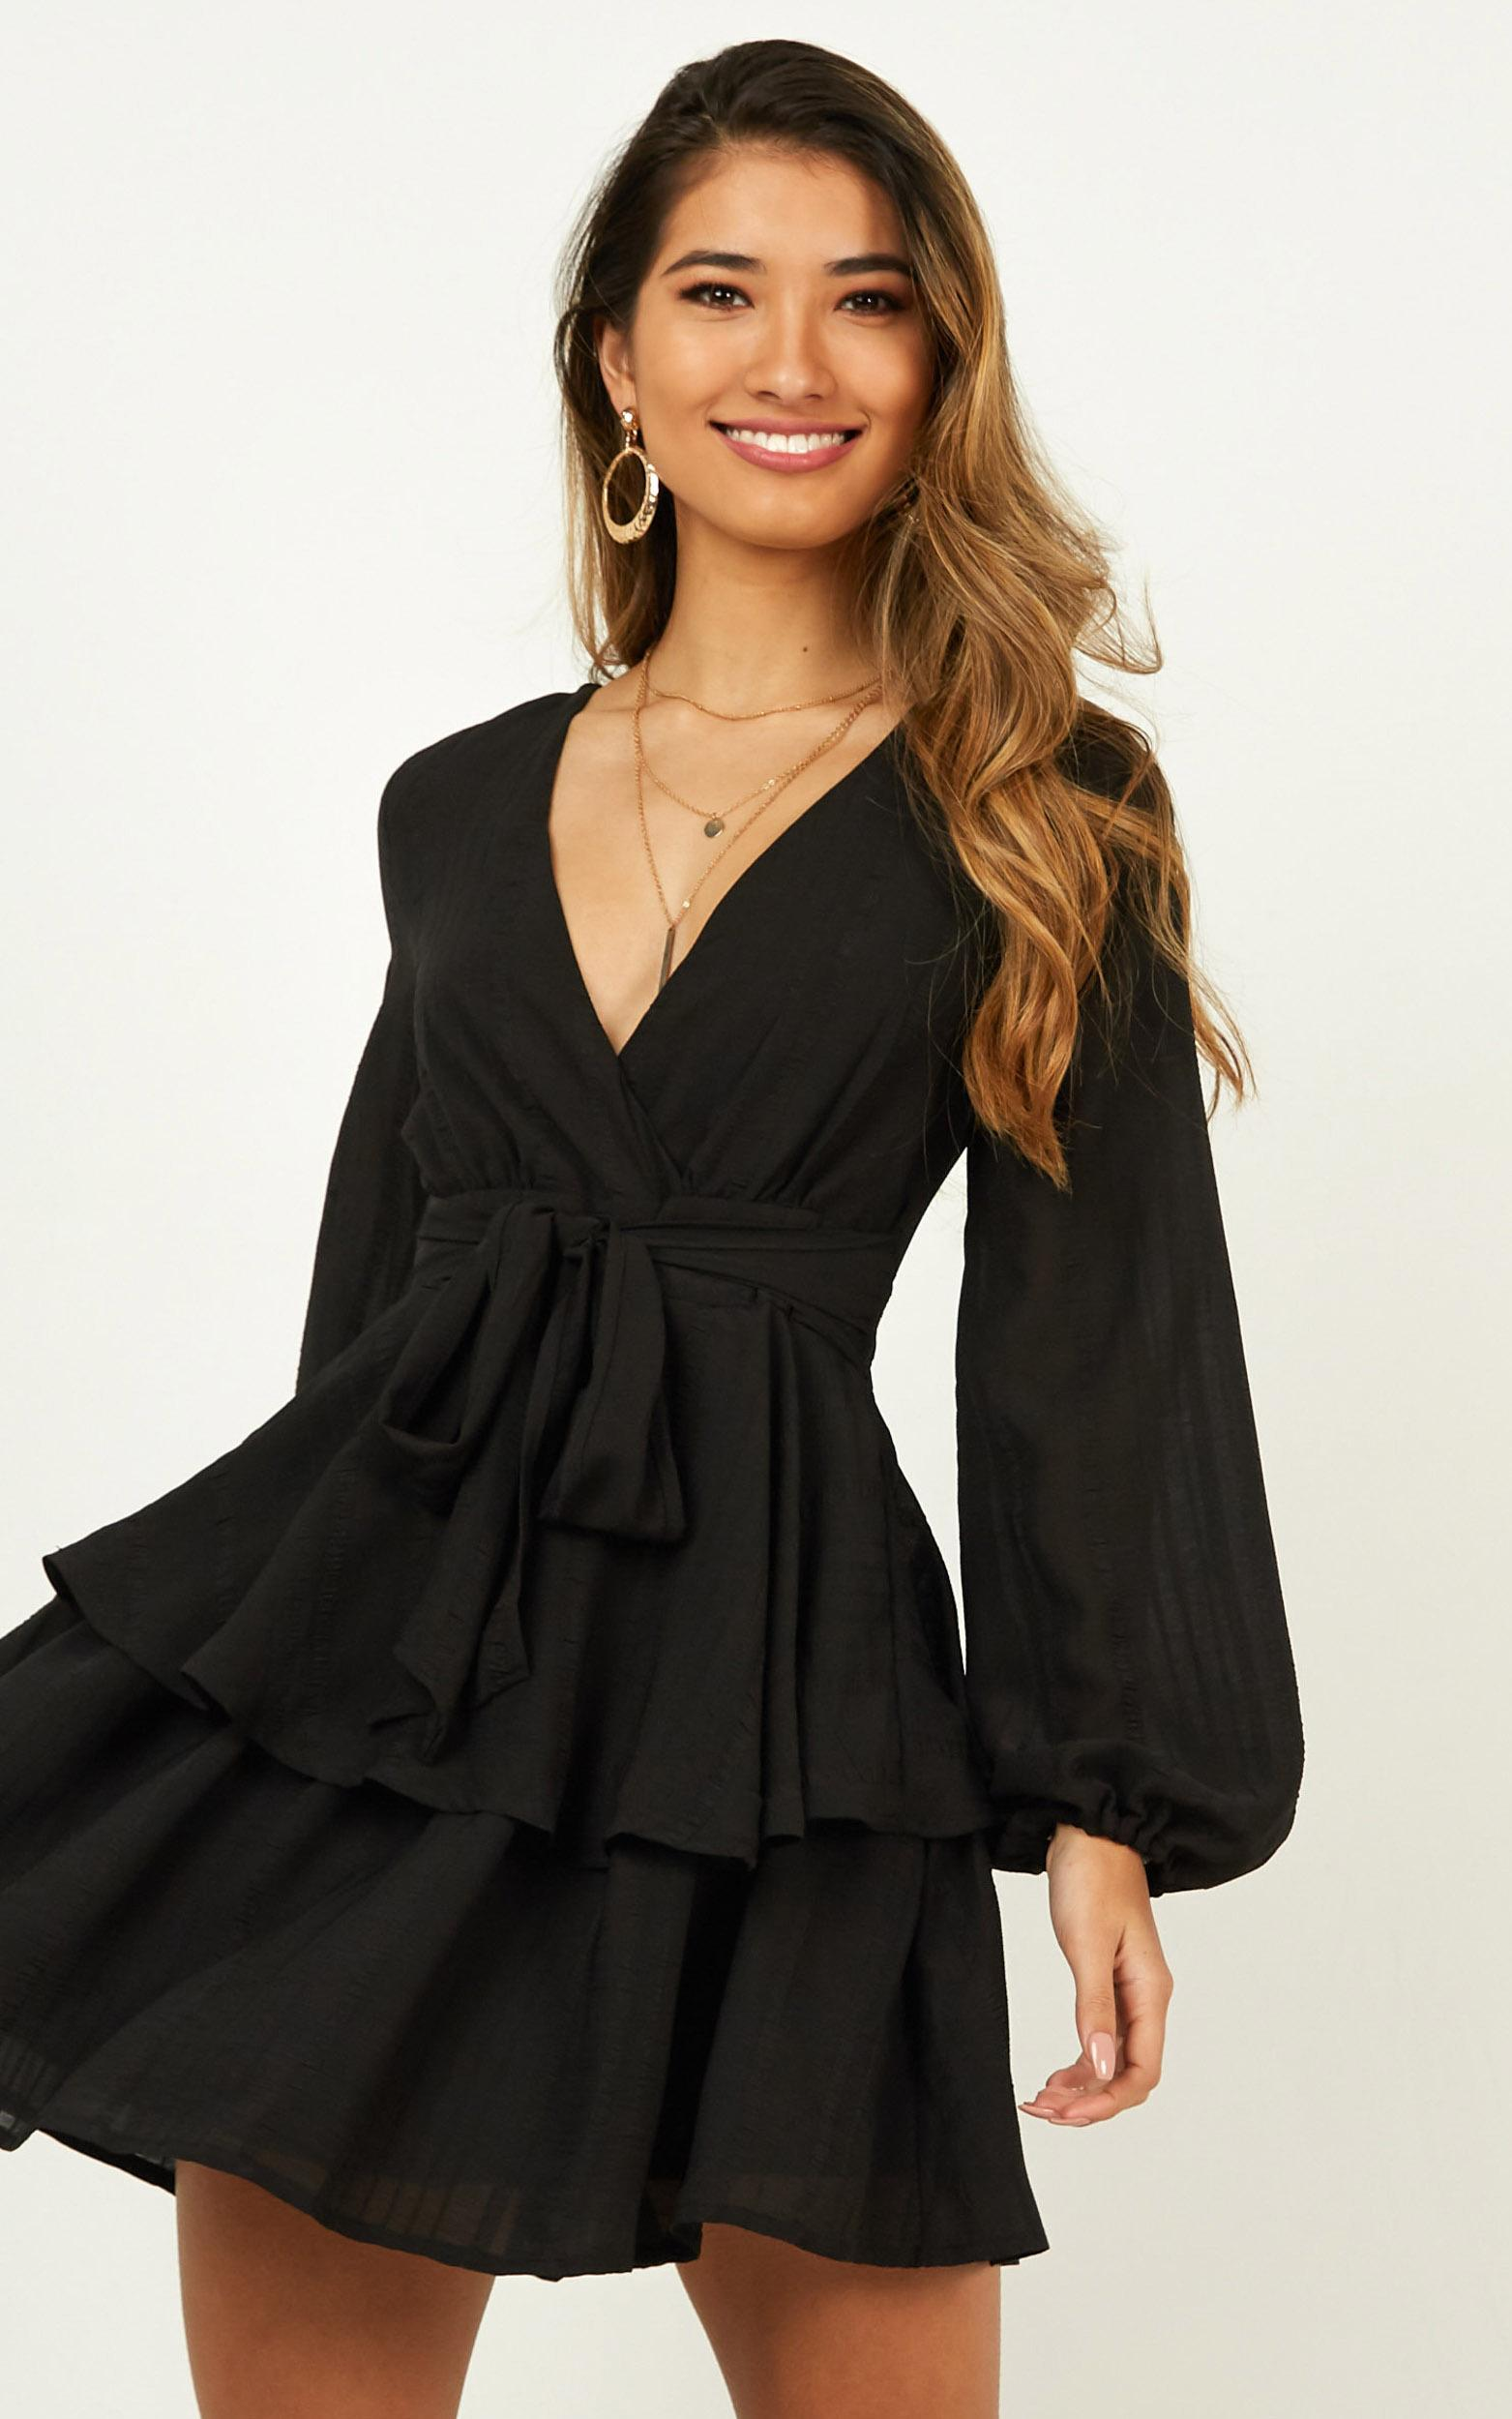 BREAKS LIKE A HEART DRESS IN BLACK $64.95 (25% off at checkout!)